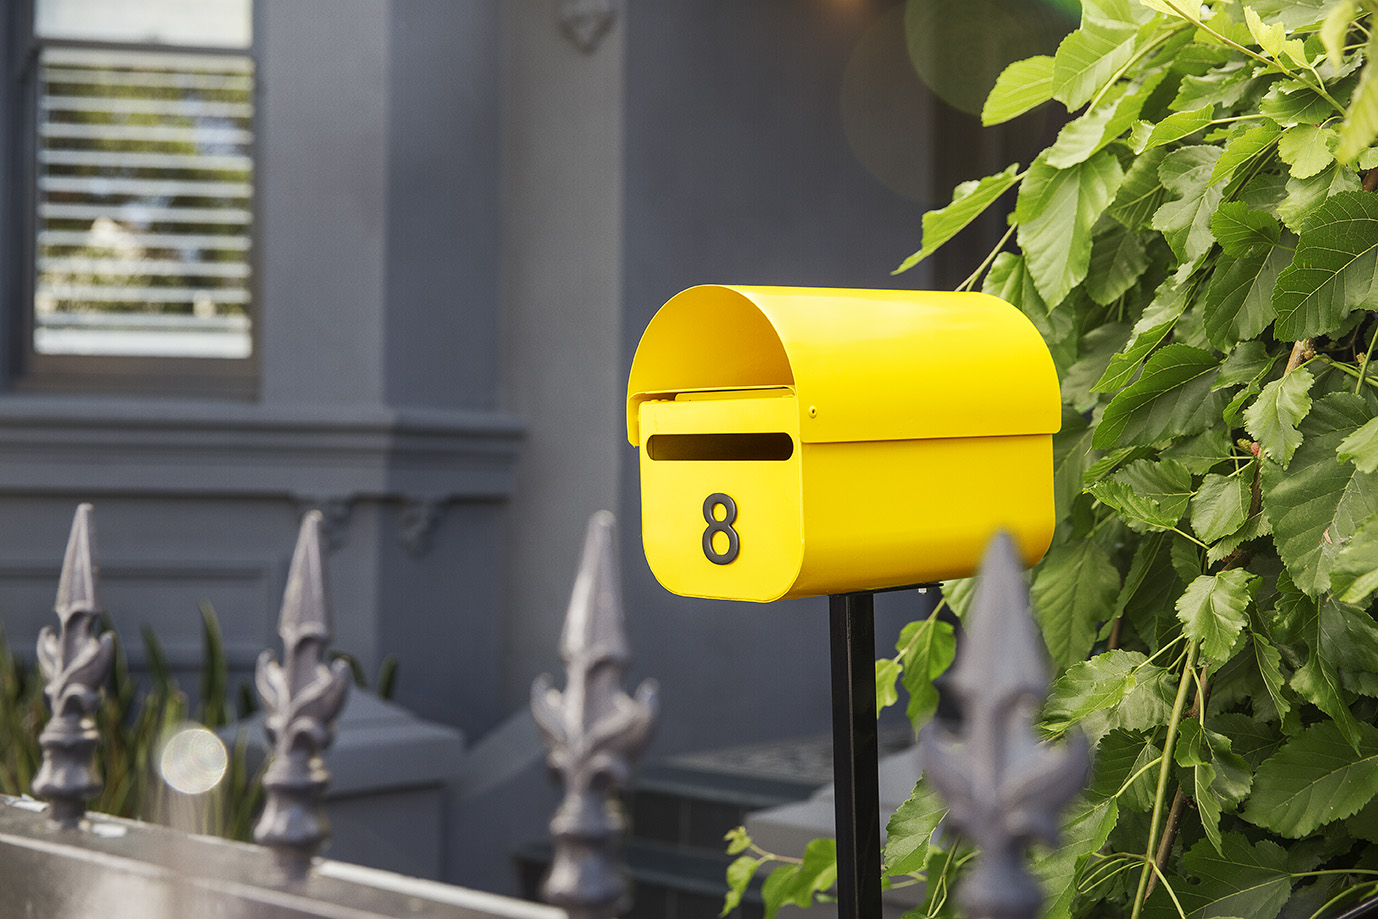 Letterbox image - Ray White_Know How - Landscape - Low res.jpg